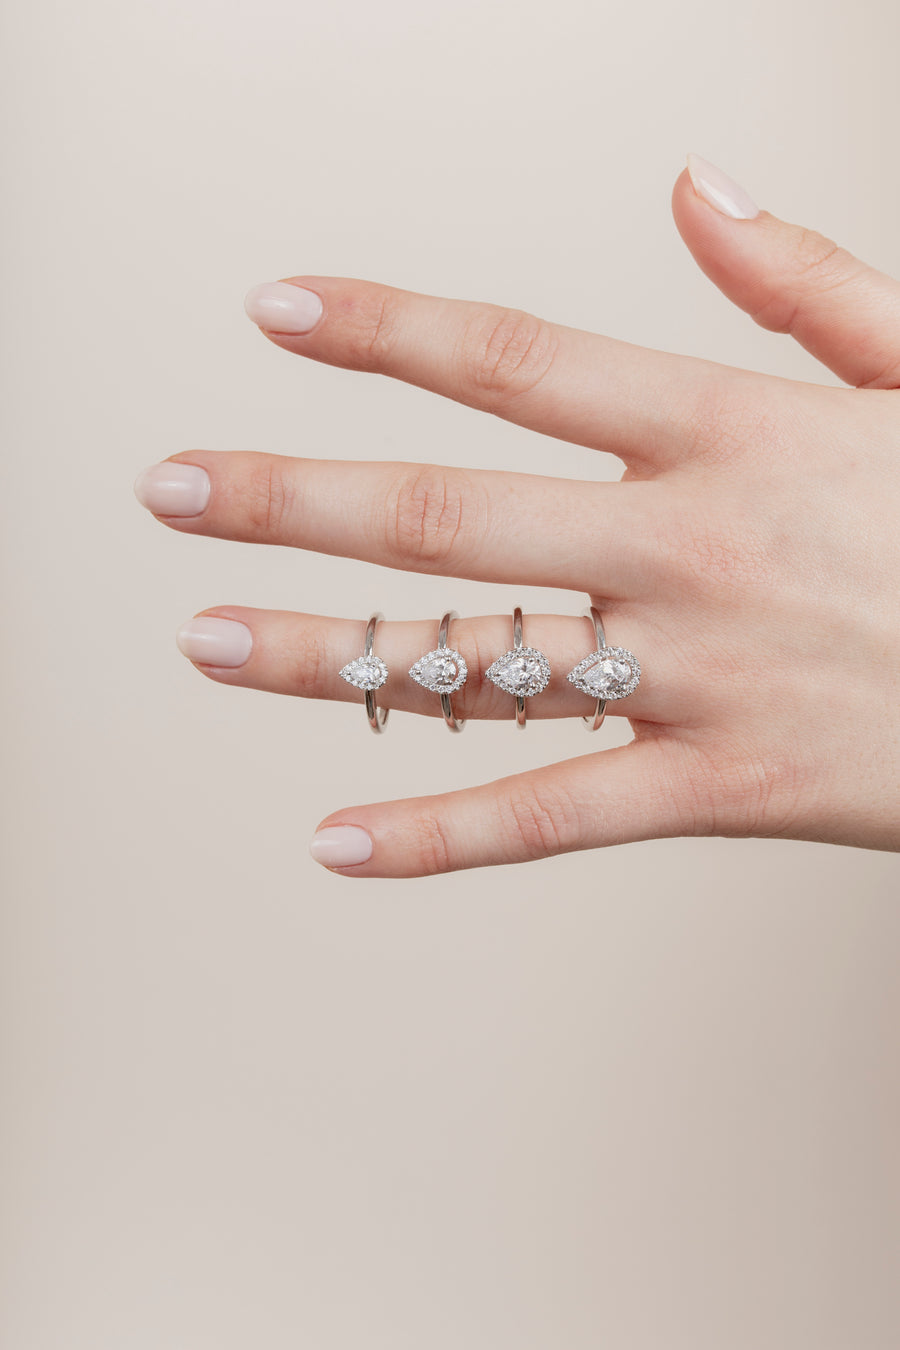 The Pear Solitaire with Halo